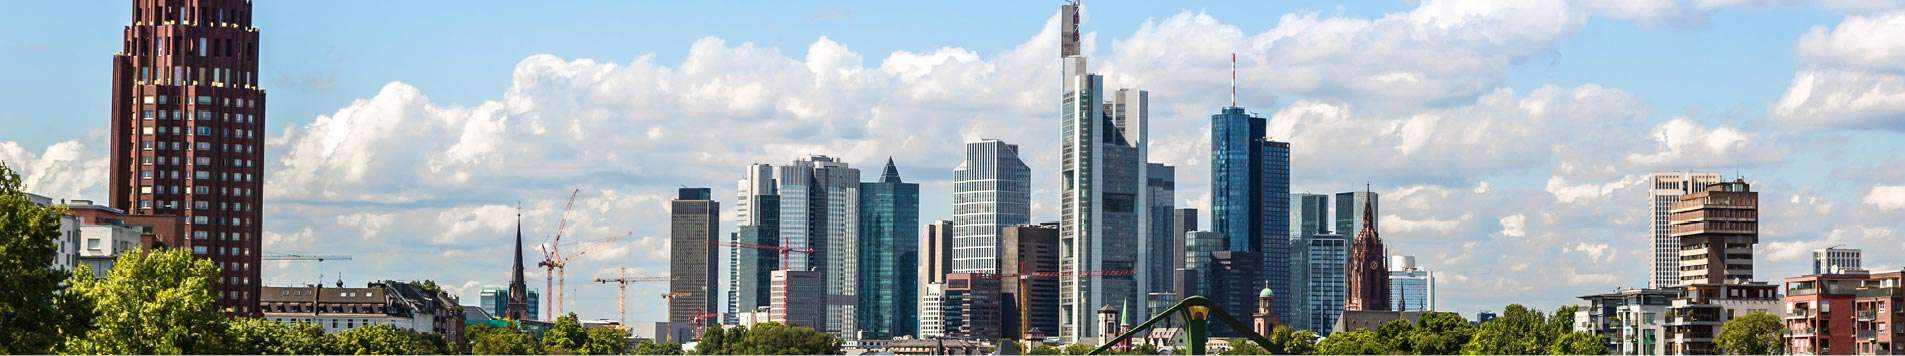 IPO Corporate News Frankfurt City - Germany